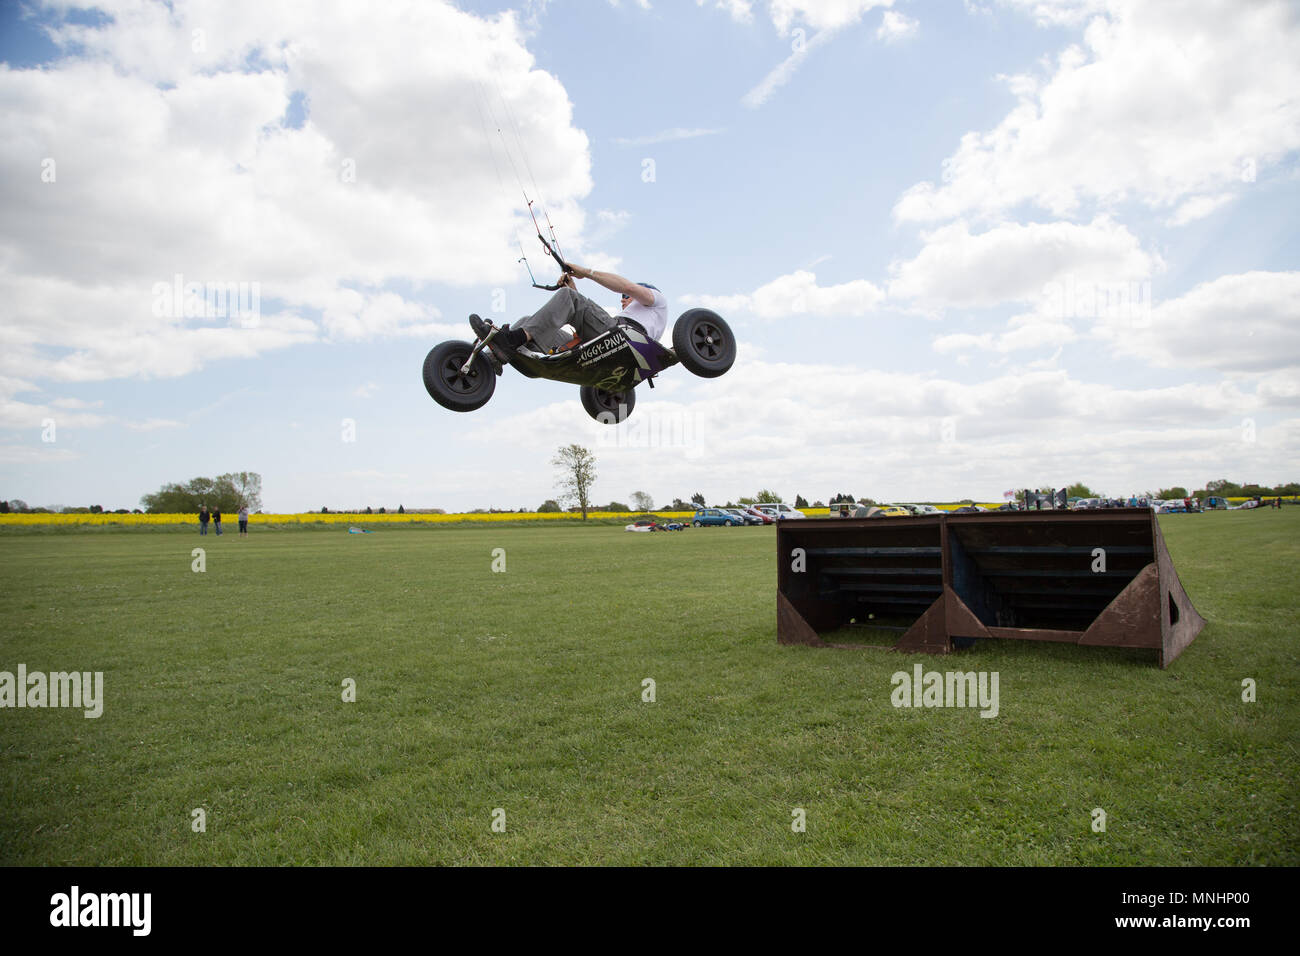 Extreme sport kite landboarding in Essex, UK. Going airborne in a buggy. - Stock Image